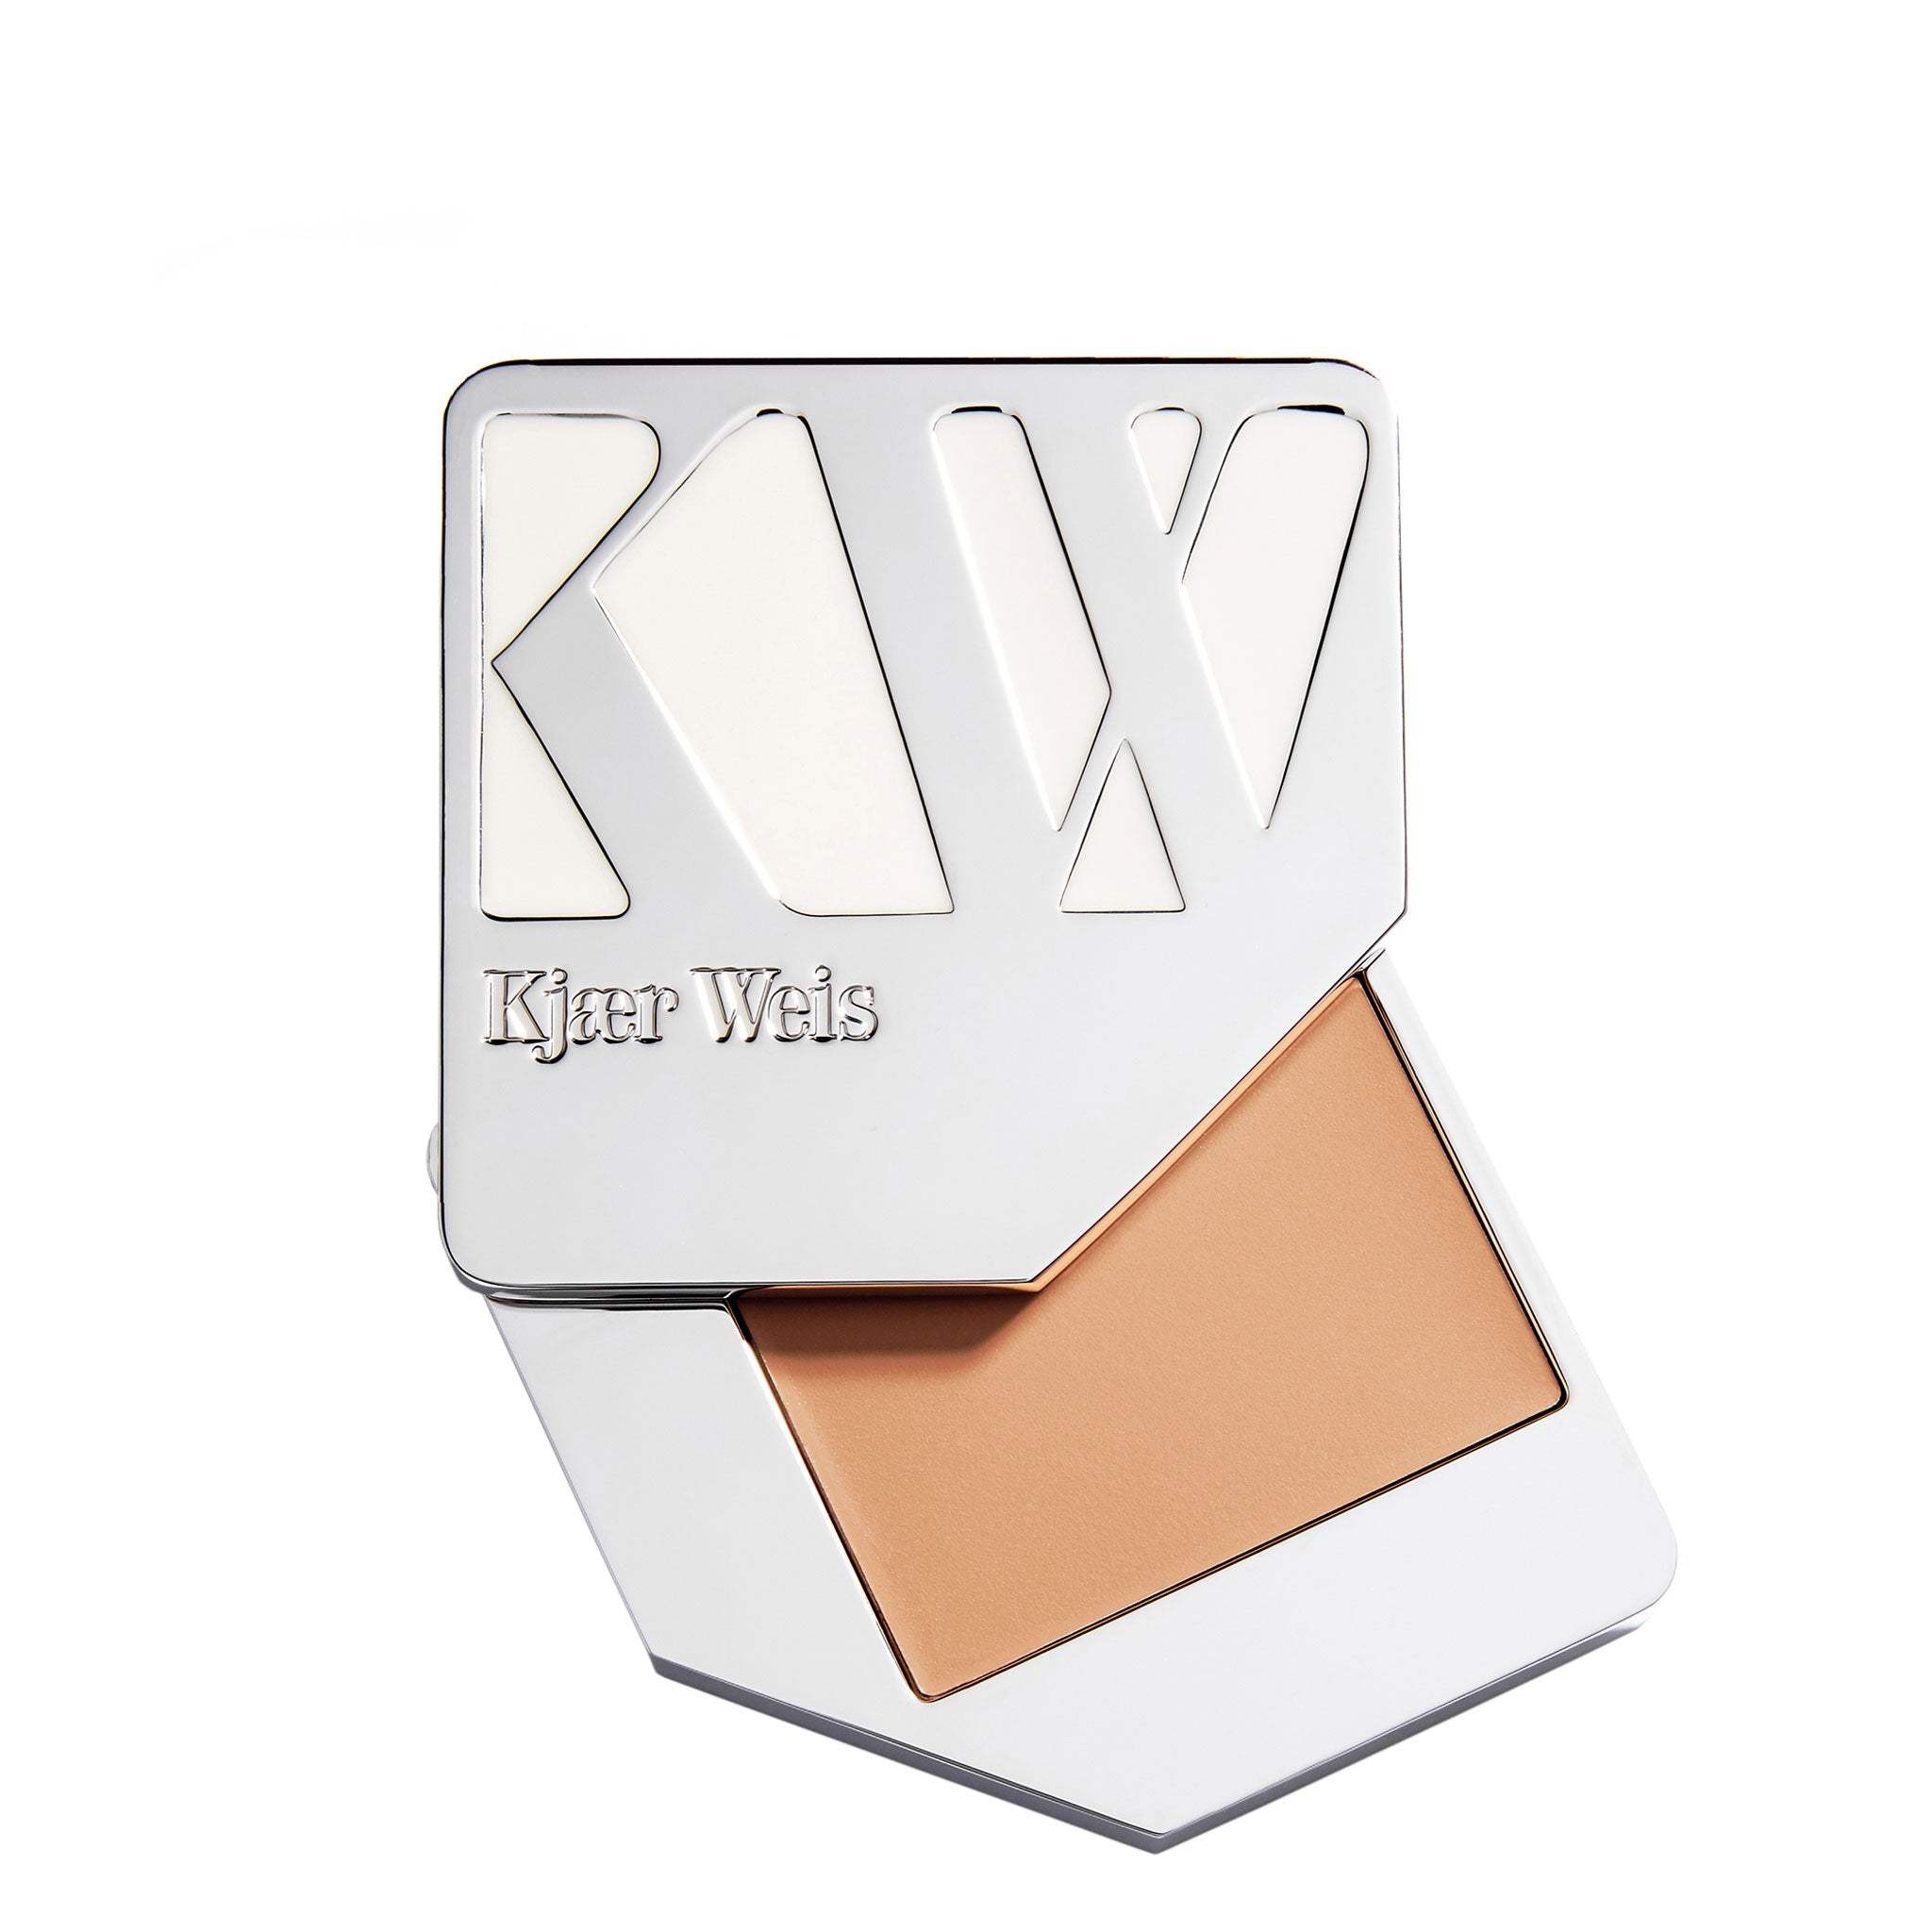 Kjaer Weis Cream Foundation Feathery